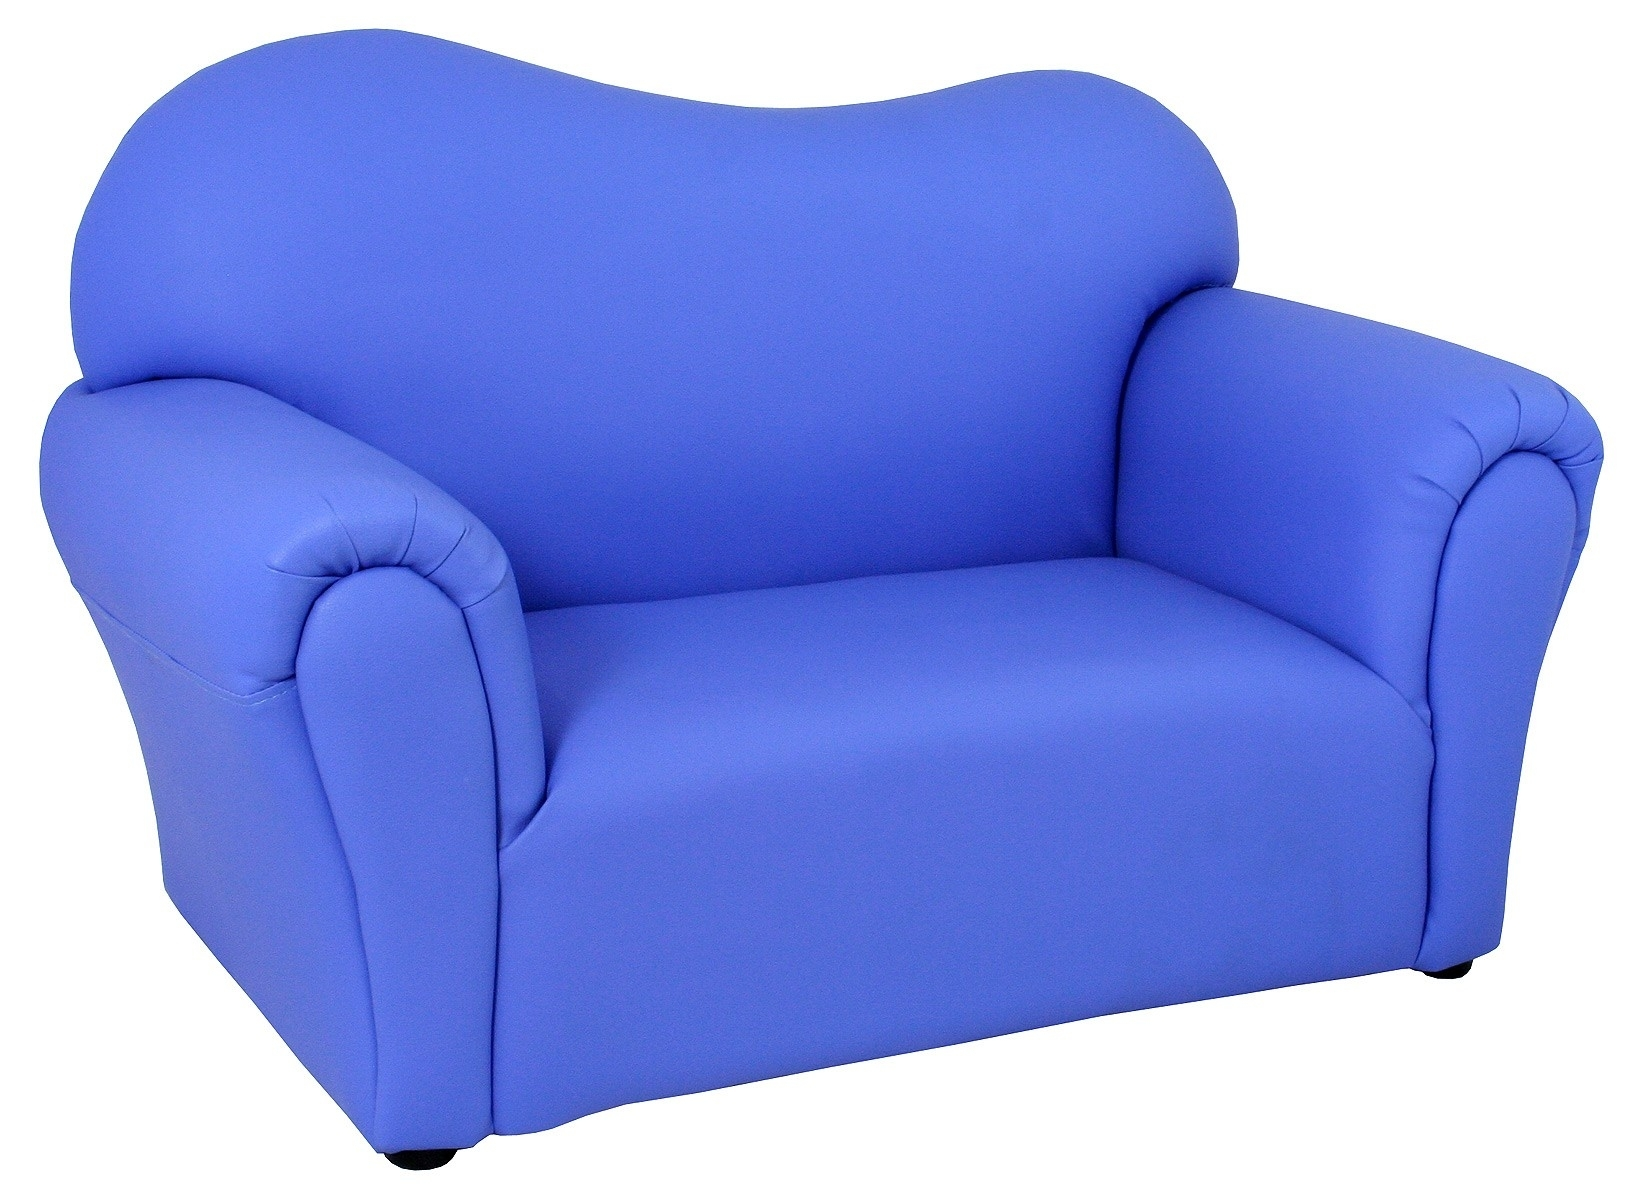 Childrens Blue Mini Sofa – Be Fabulous! Intended For Childrens Sofas (View 6 of 10)